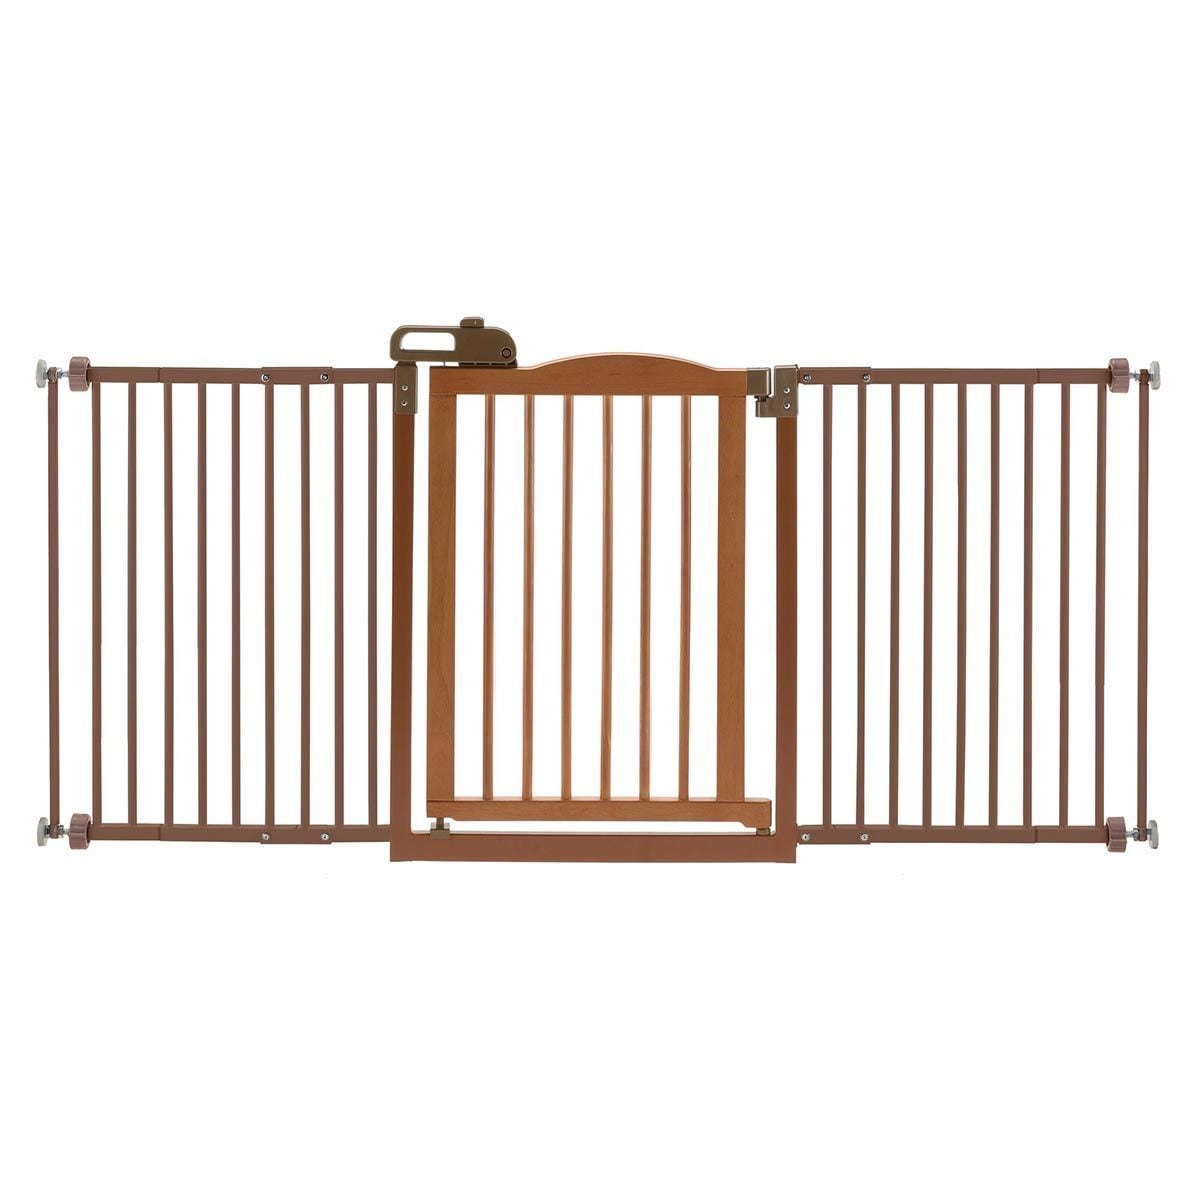 Richell One-Touch Wide Pressure Mounted Dog Gate II (Brown)